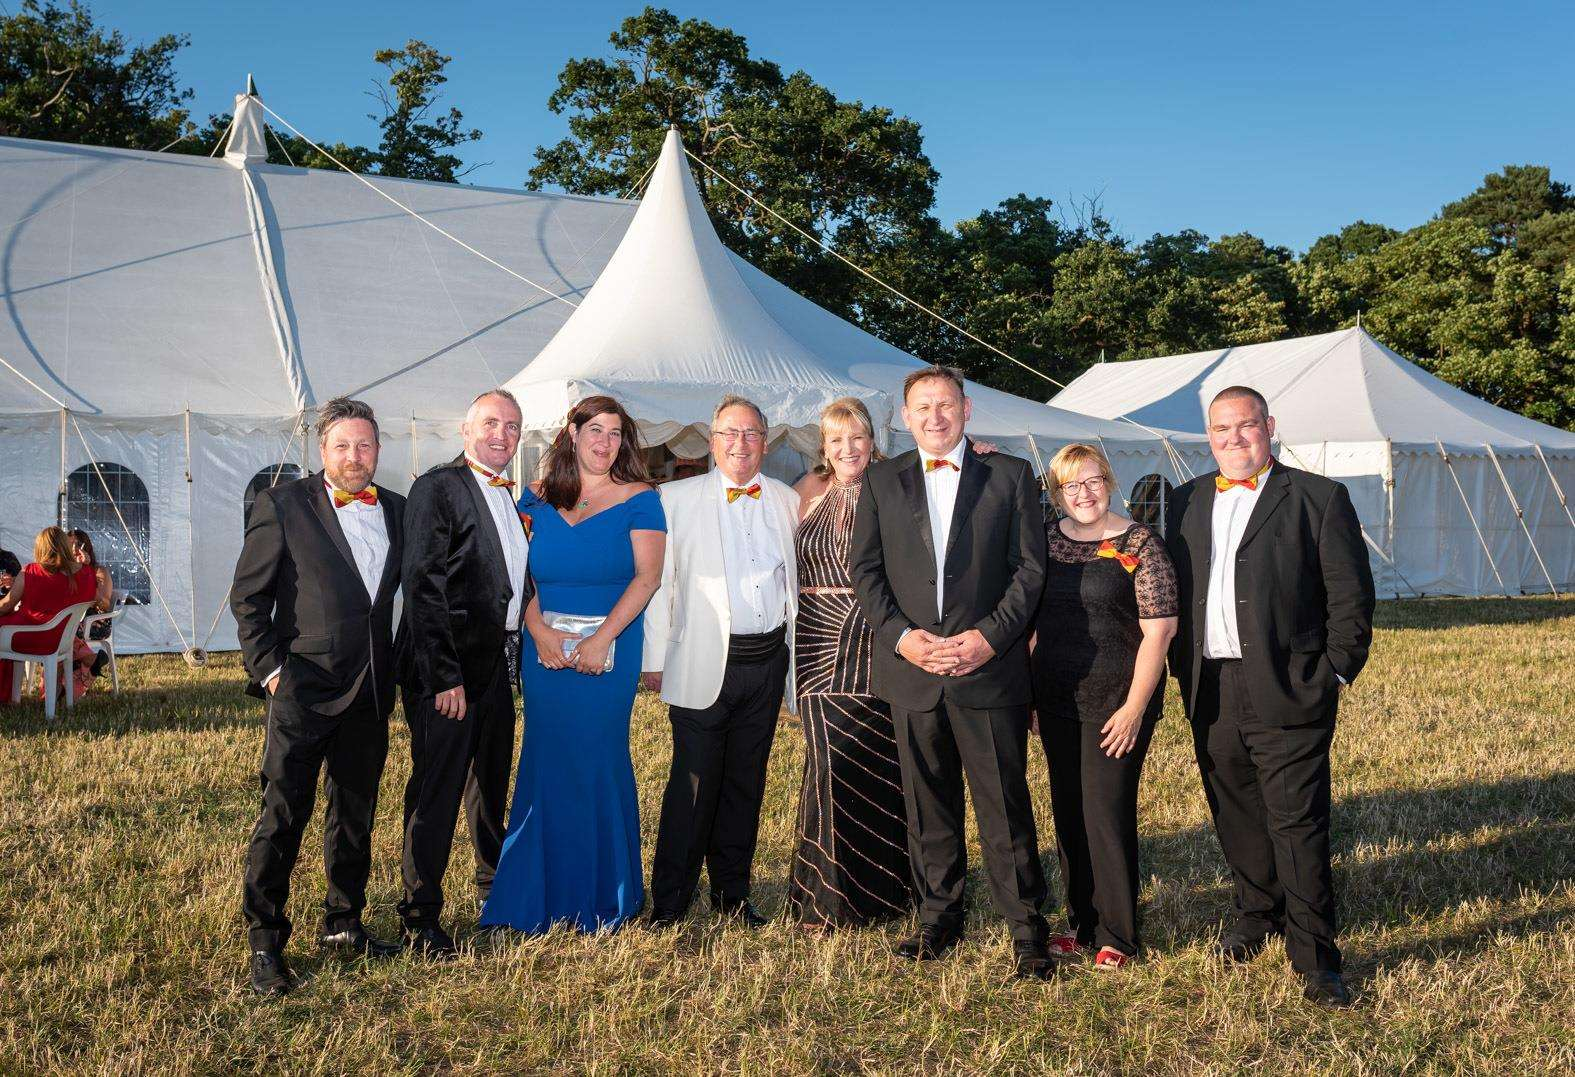 The announcement came after the Festival Too Ball which was held at the weekend. Committee members are pictured, from left, Triston Finnis, Alan Taylor, Abbie Panks, Nick Daubney, Bridget Nurse, Shaun Blackmur, Kate Francis and Simon Wade. (2586242)